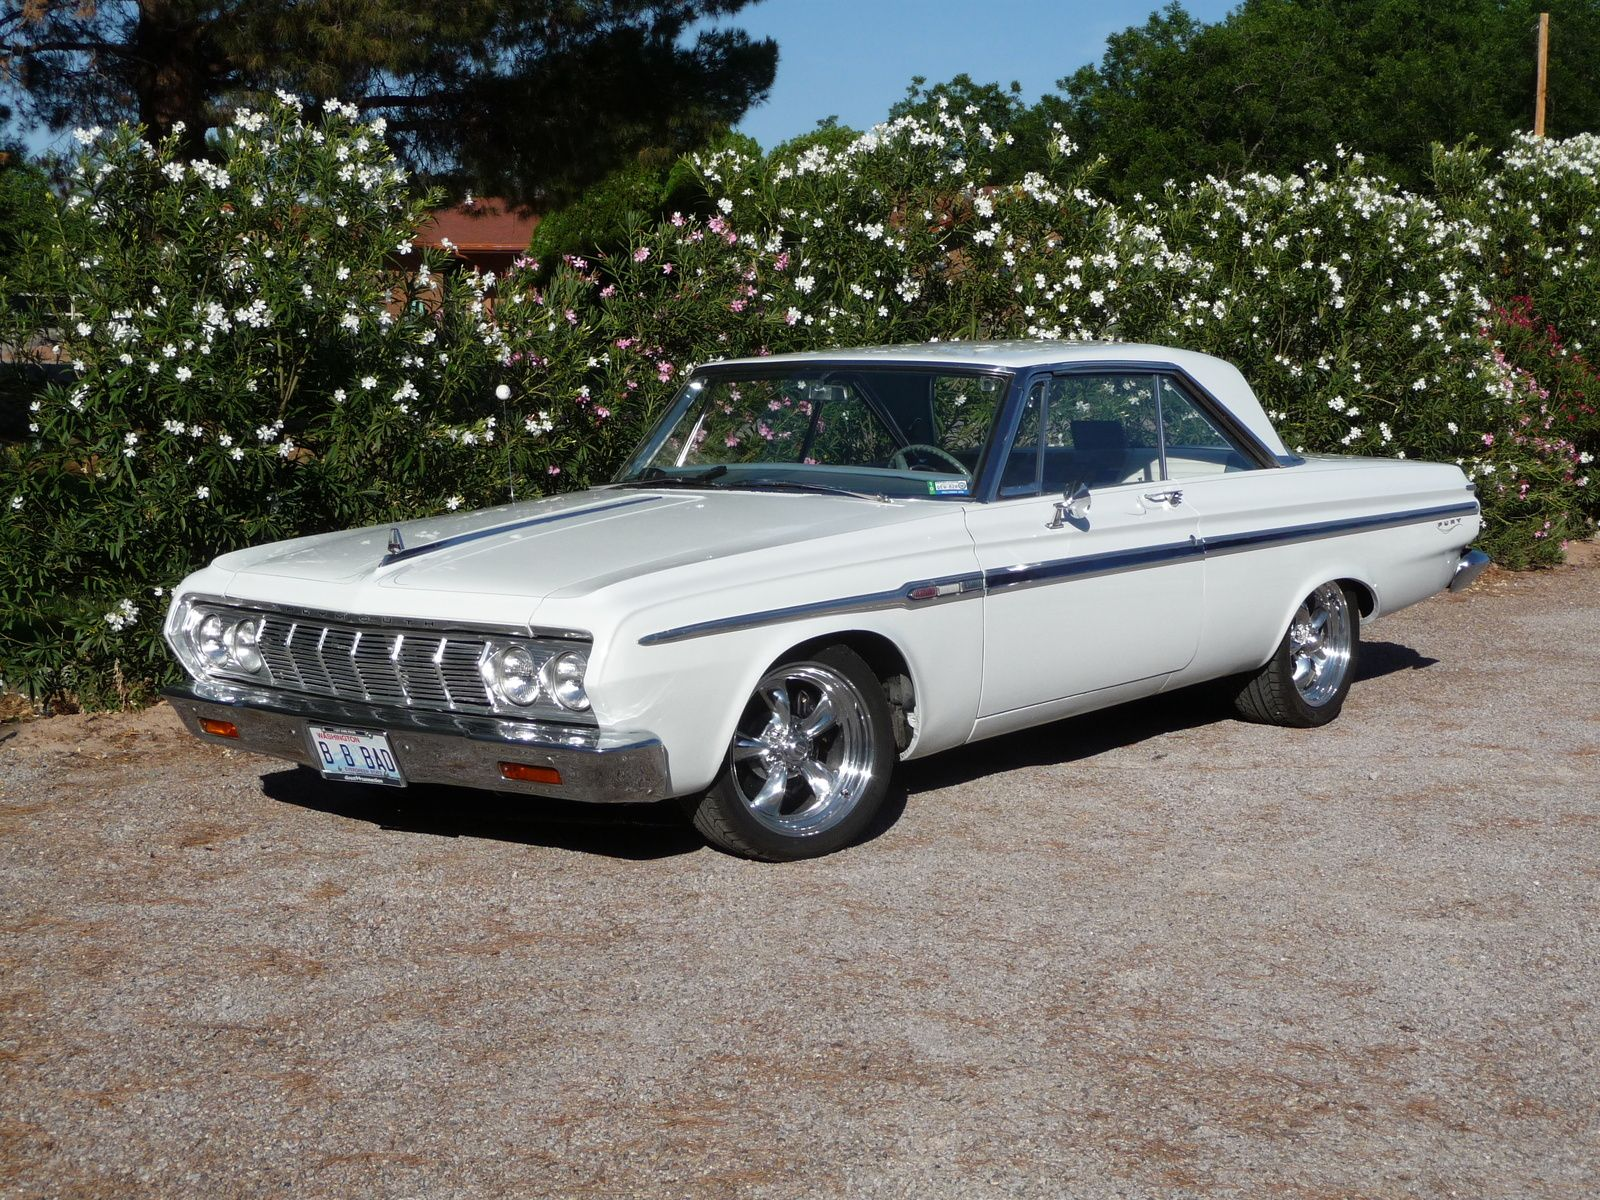 1964 Plymouth Fury The material which I can produce is suitable for     1964 Plymouth Fury The material which I can produce is suitable for  different flat objects